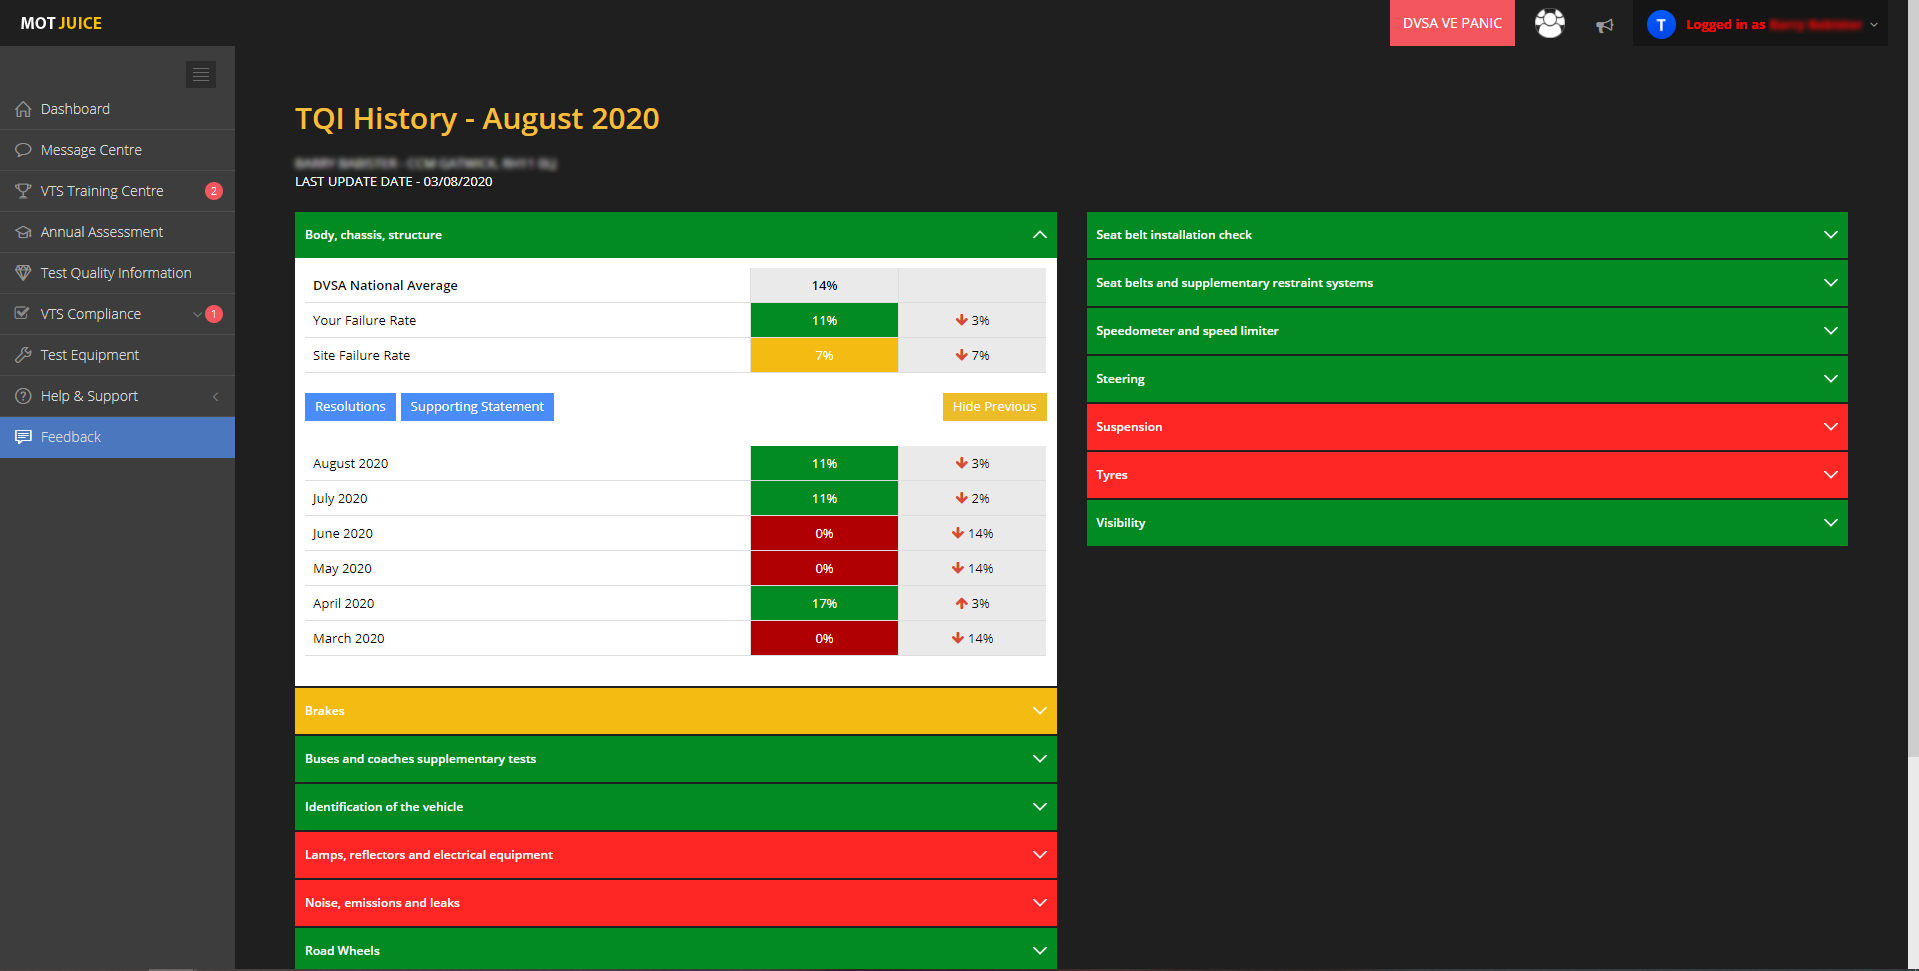 you can view historical test quality information records and compare up to 6 months of previous data